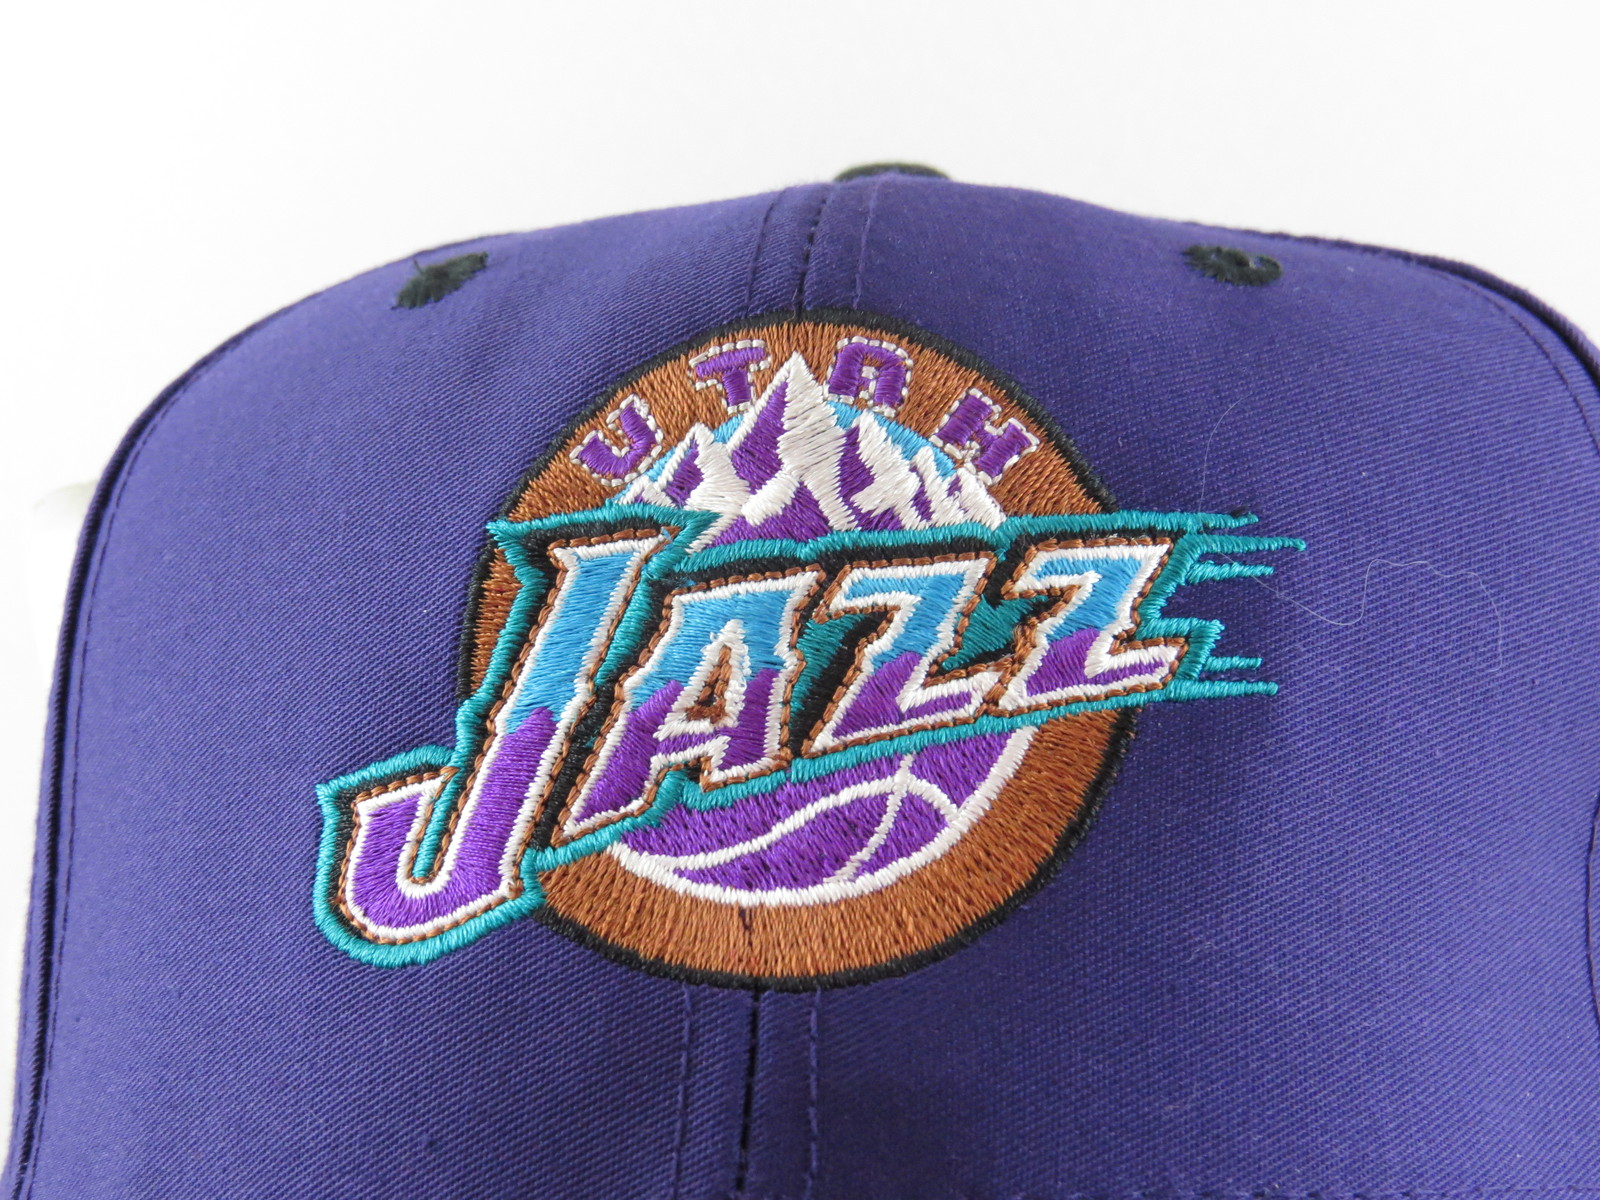 Utah Jazz Hat (VTG)  - 1990s Mountain Logo by Midway - Adult Snapback (NWT)